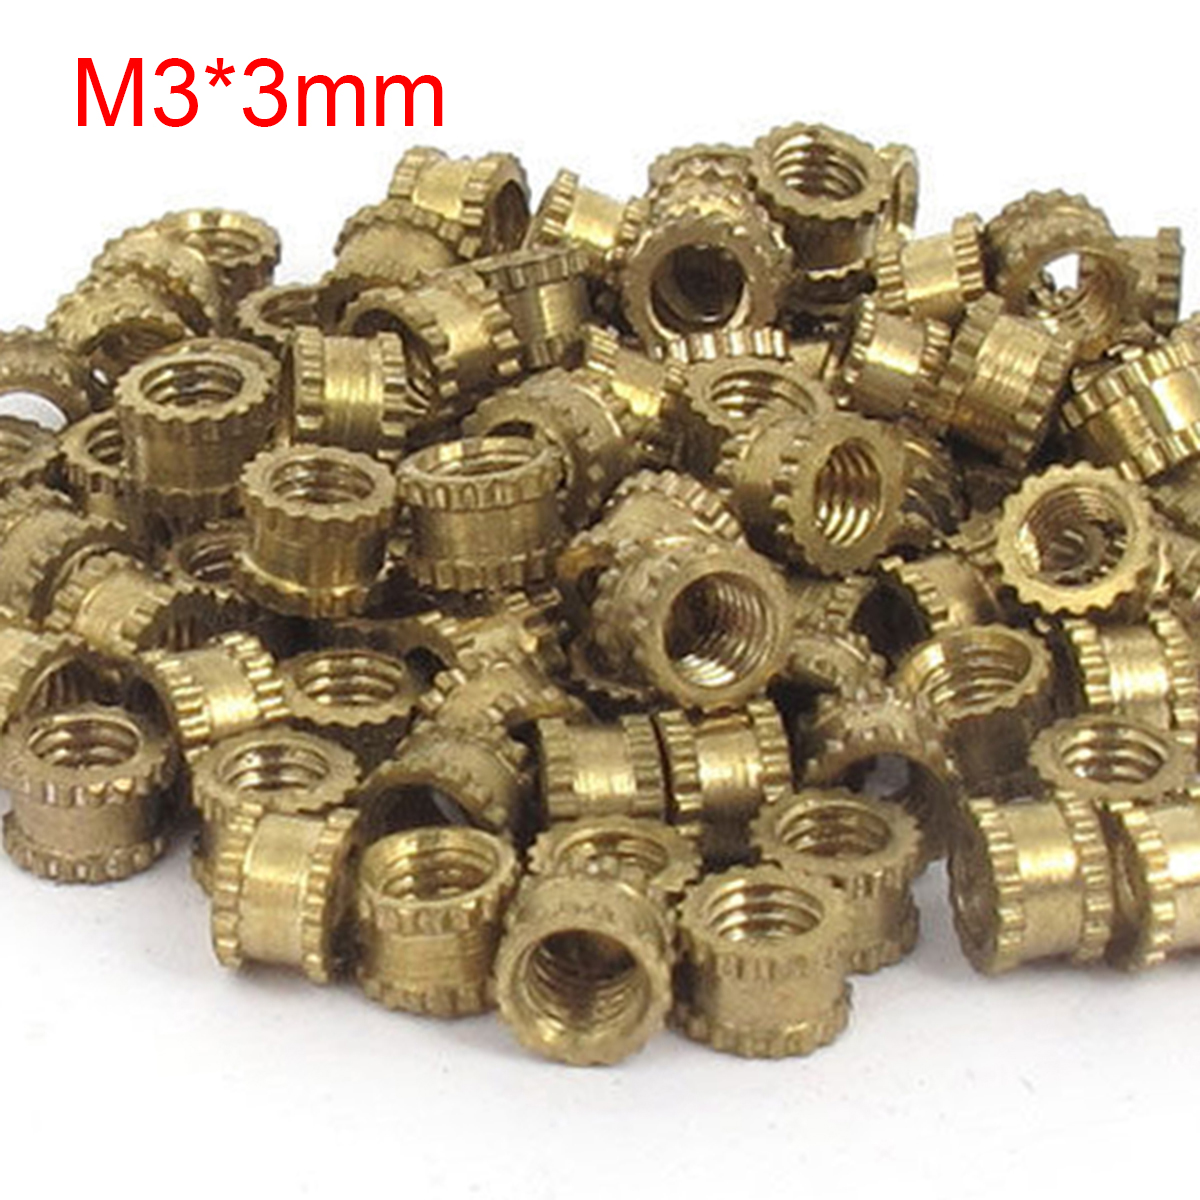 100pcs 4.2mm Diameter Round Metal Knurl Thread Insert Nuts M3*3mm Threaded Brass Tone